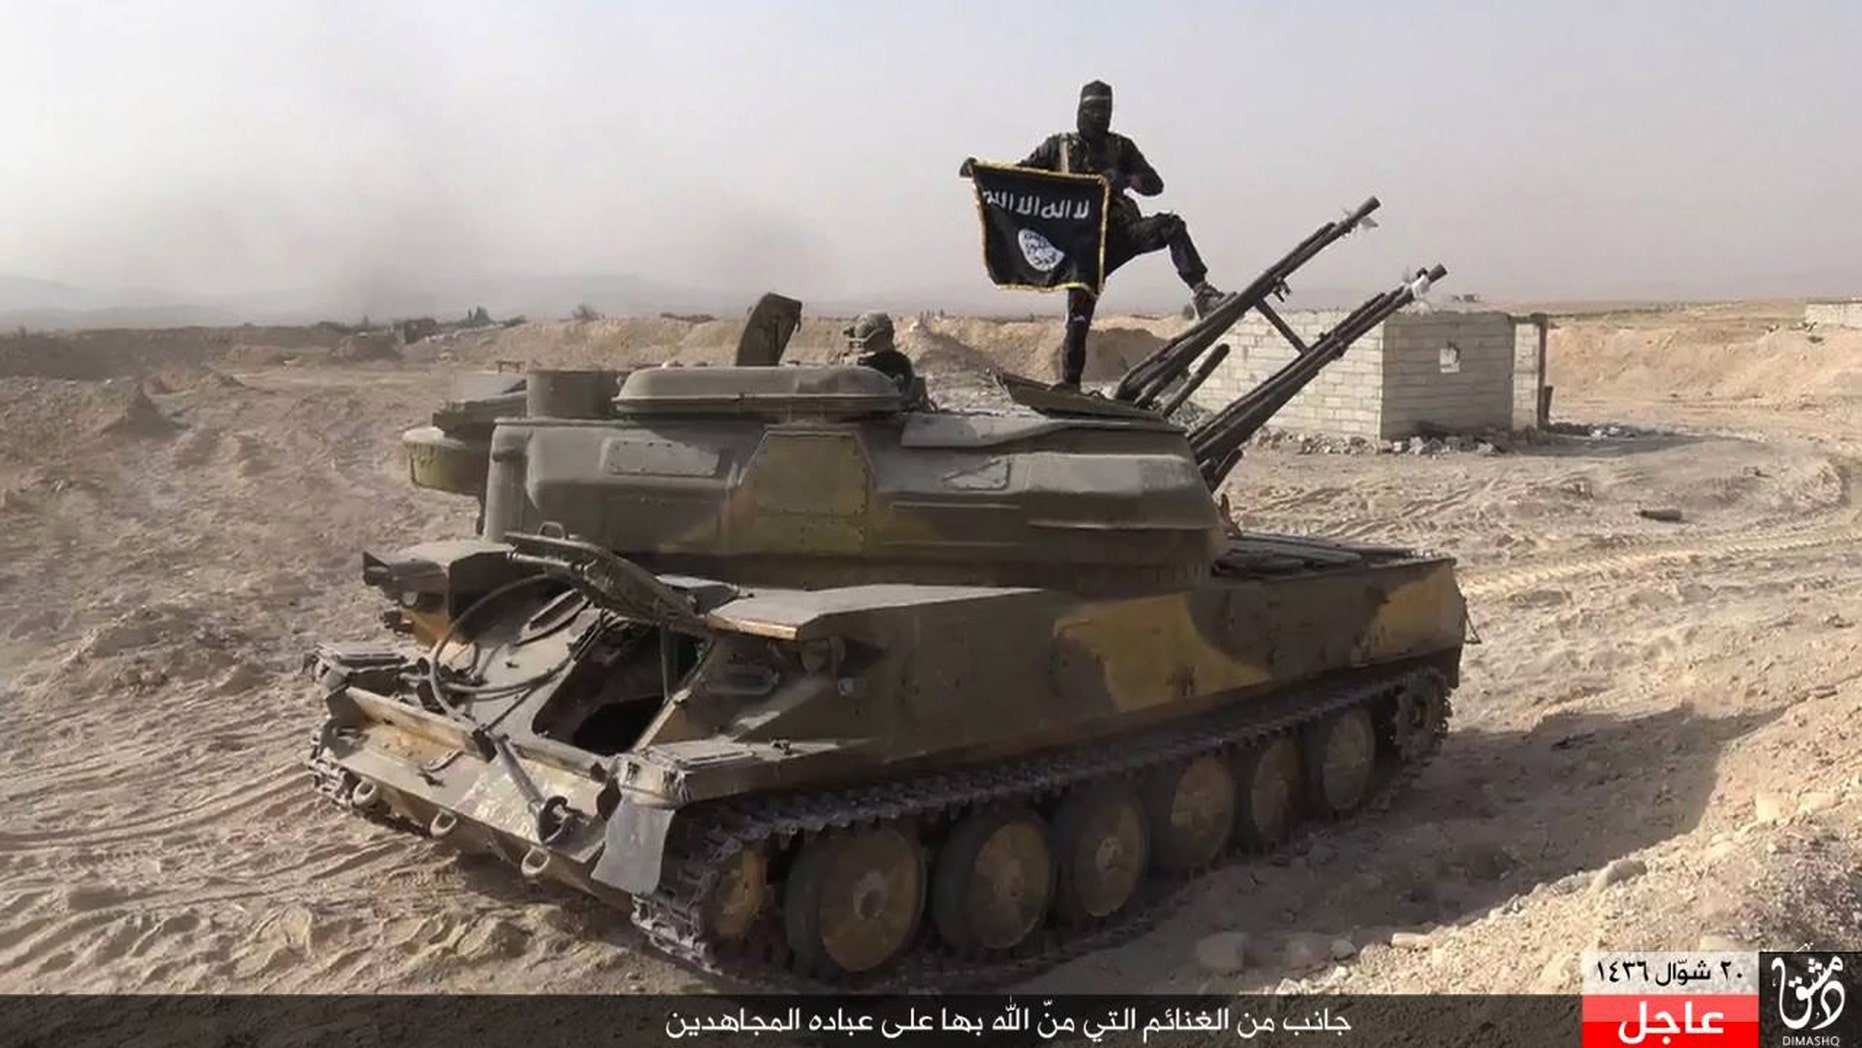 Aug. 5, 2015 - ISIS militant on a tank captured from Syrian government forces, in the town of Qaryatain southwest of Palmyra, central Syria. ISIS has abducted 230 residents, including dozens of Christians, from a central Syrian town captured by the extremists the day before, activists said Friday.